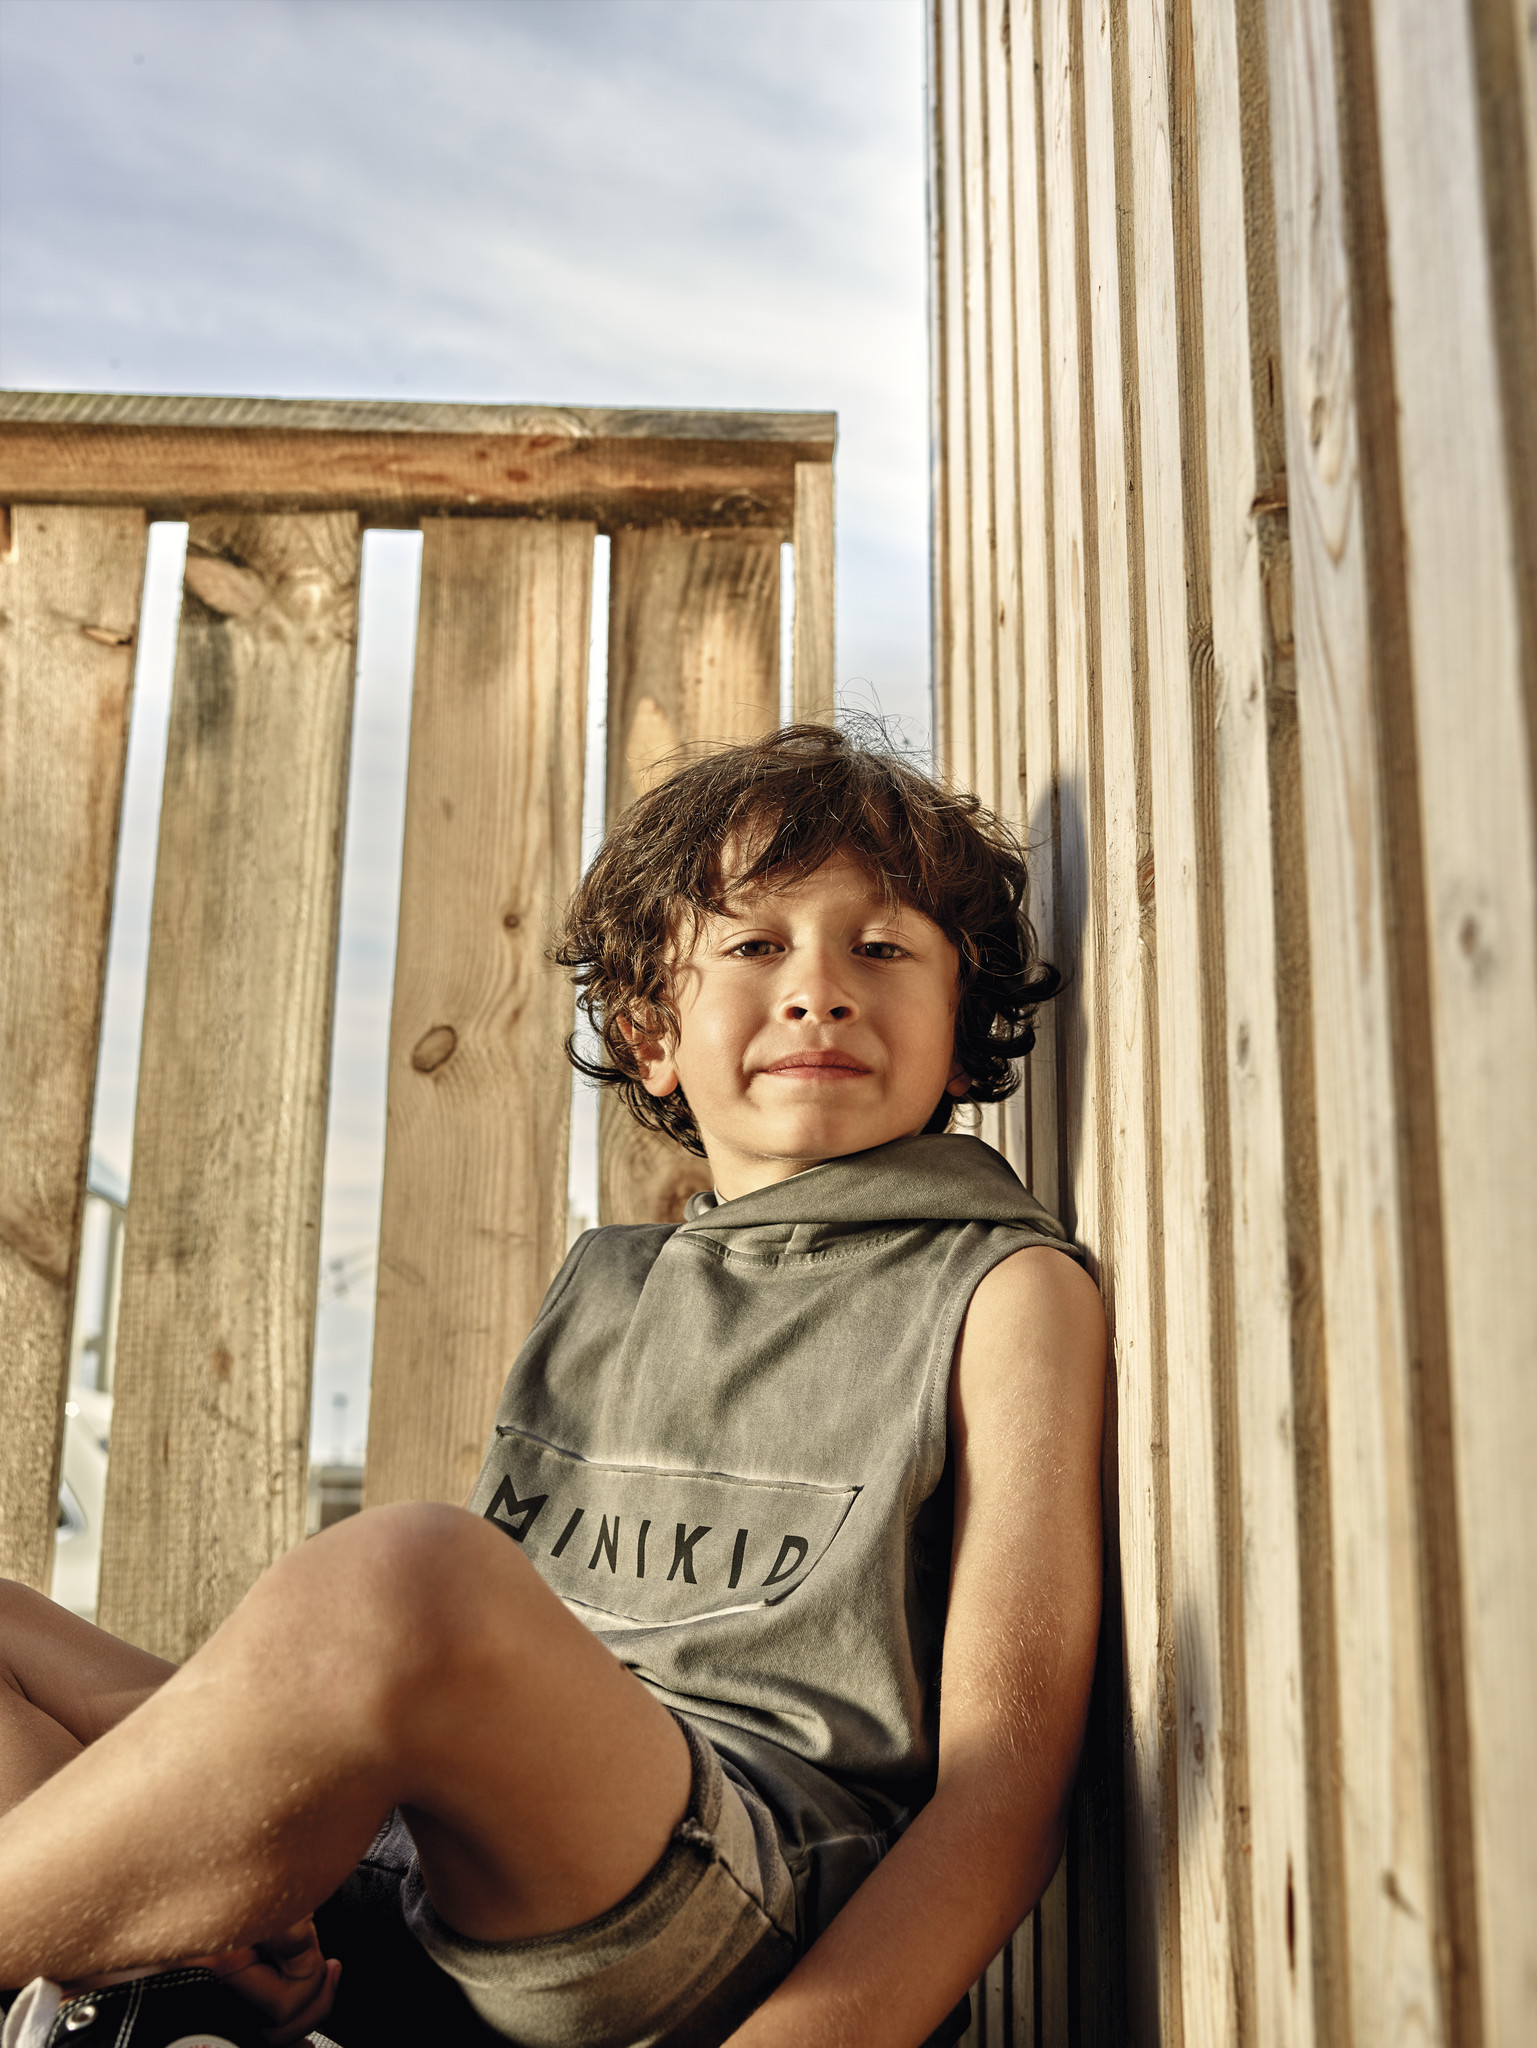 Minikid SLEEVELESS TEE  | HOODIE WITHOUT SLEEVES | MINIKID